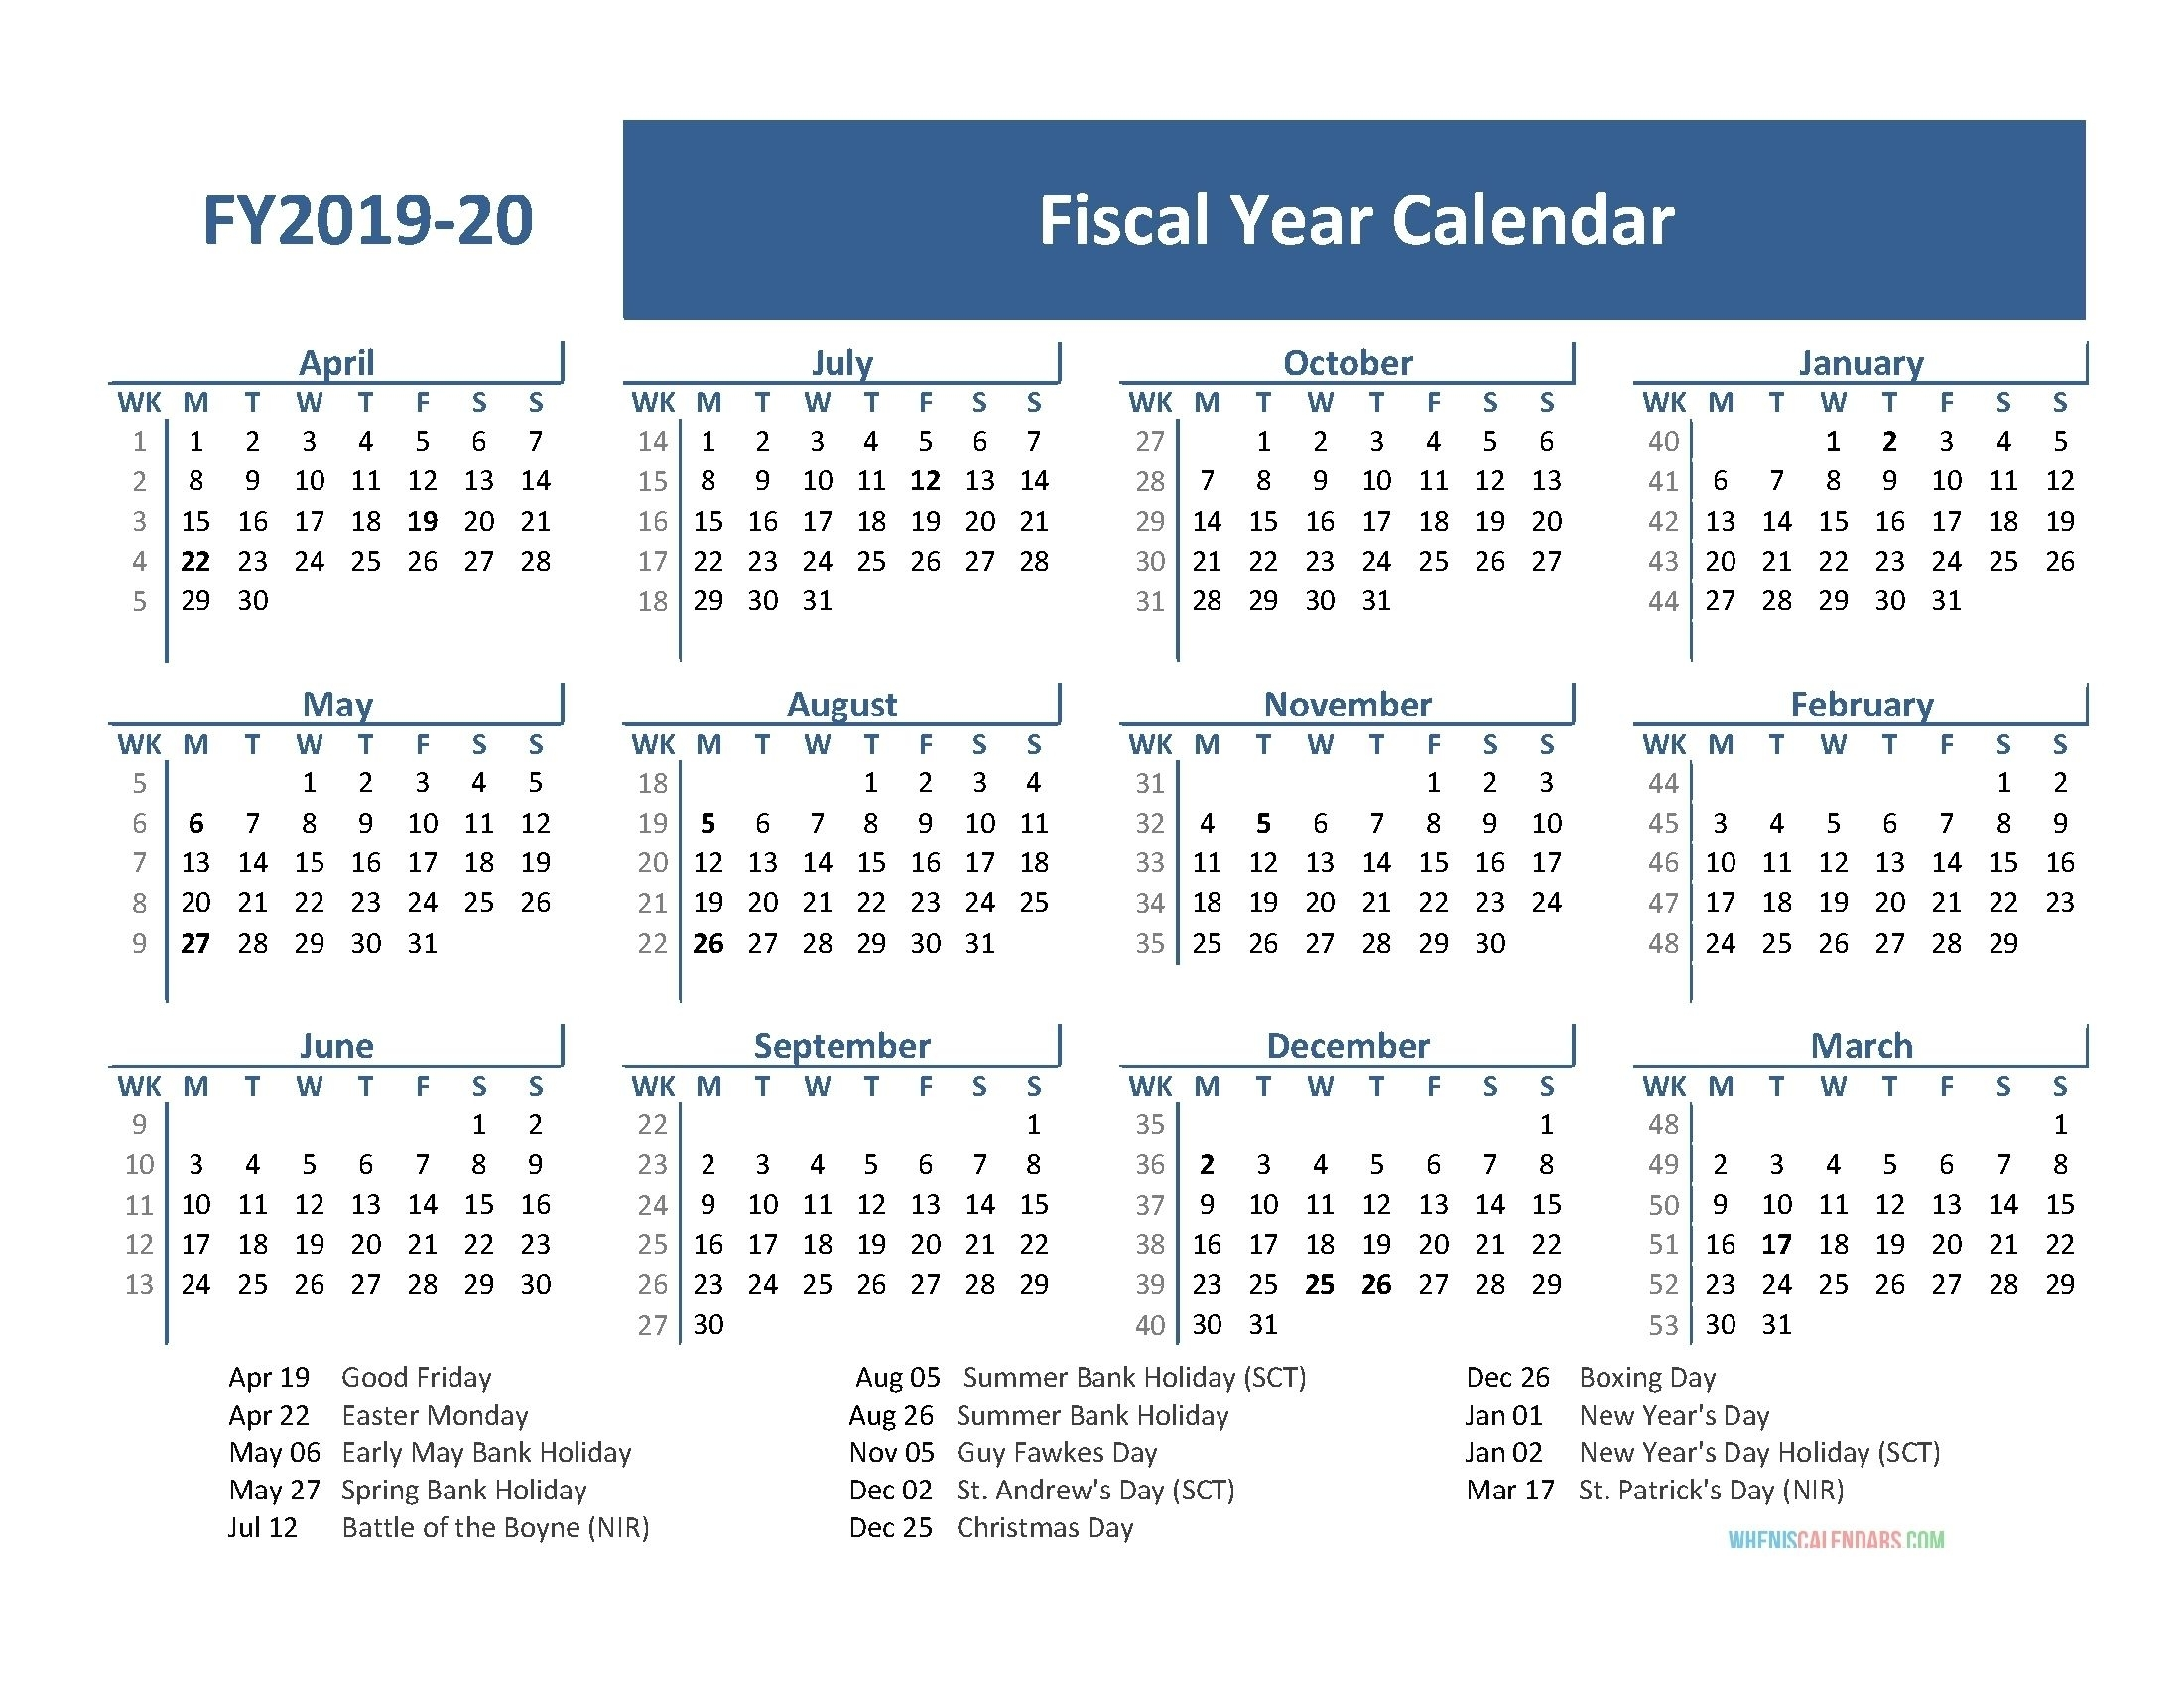 Financial Year Calendar 2019/20 Week Numbers Di 2020 with Financial Calendar Week Numbers 2019